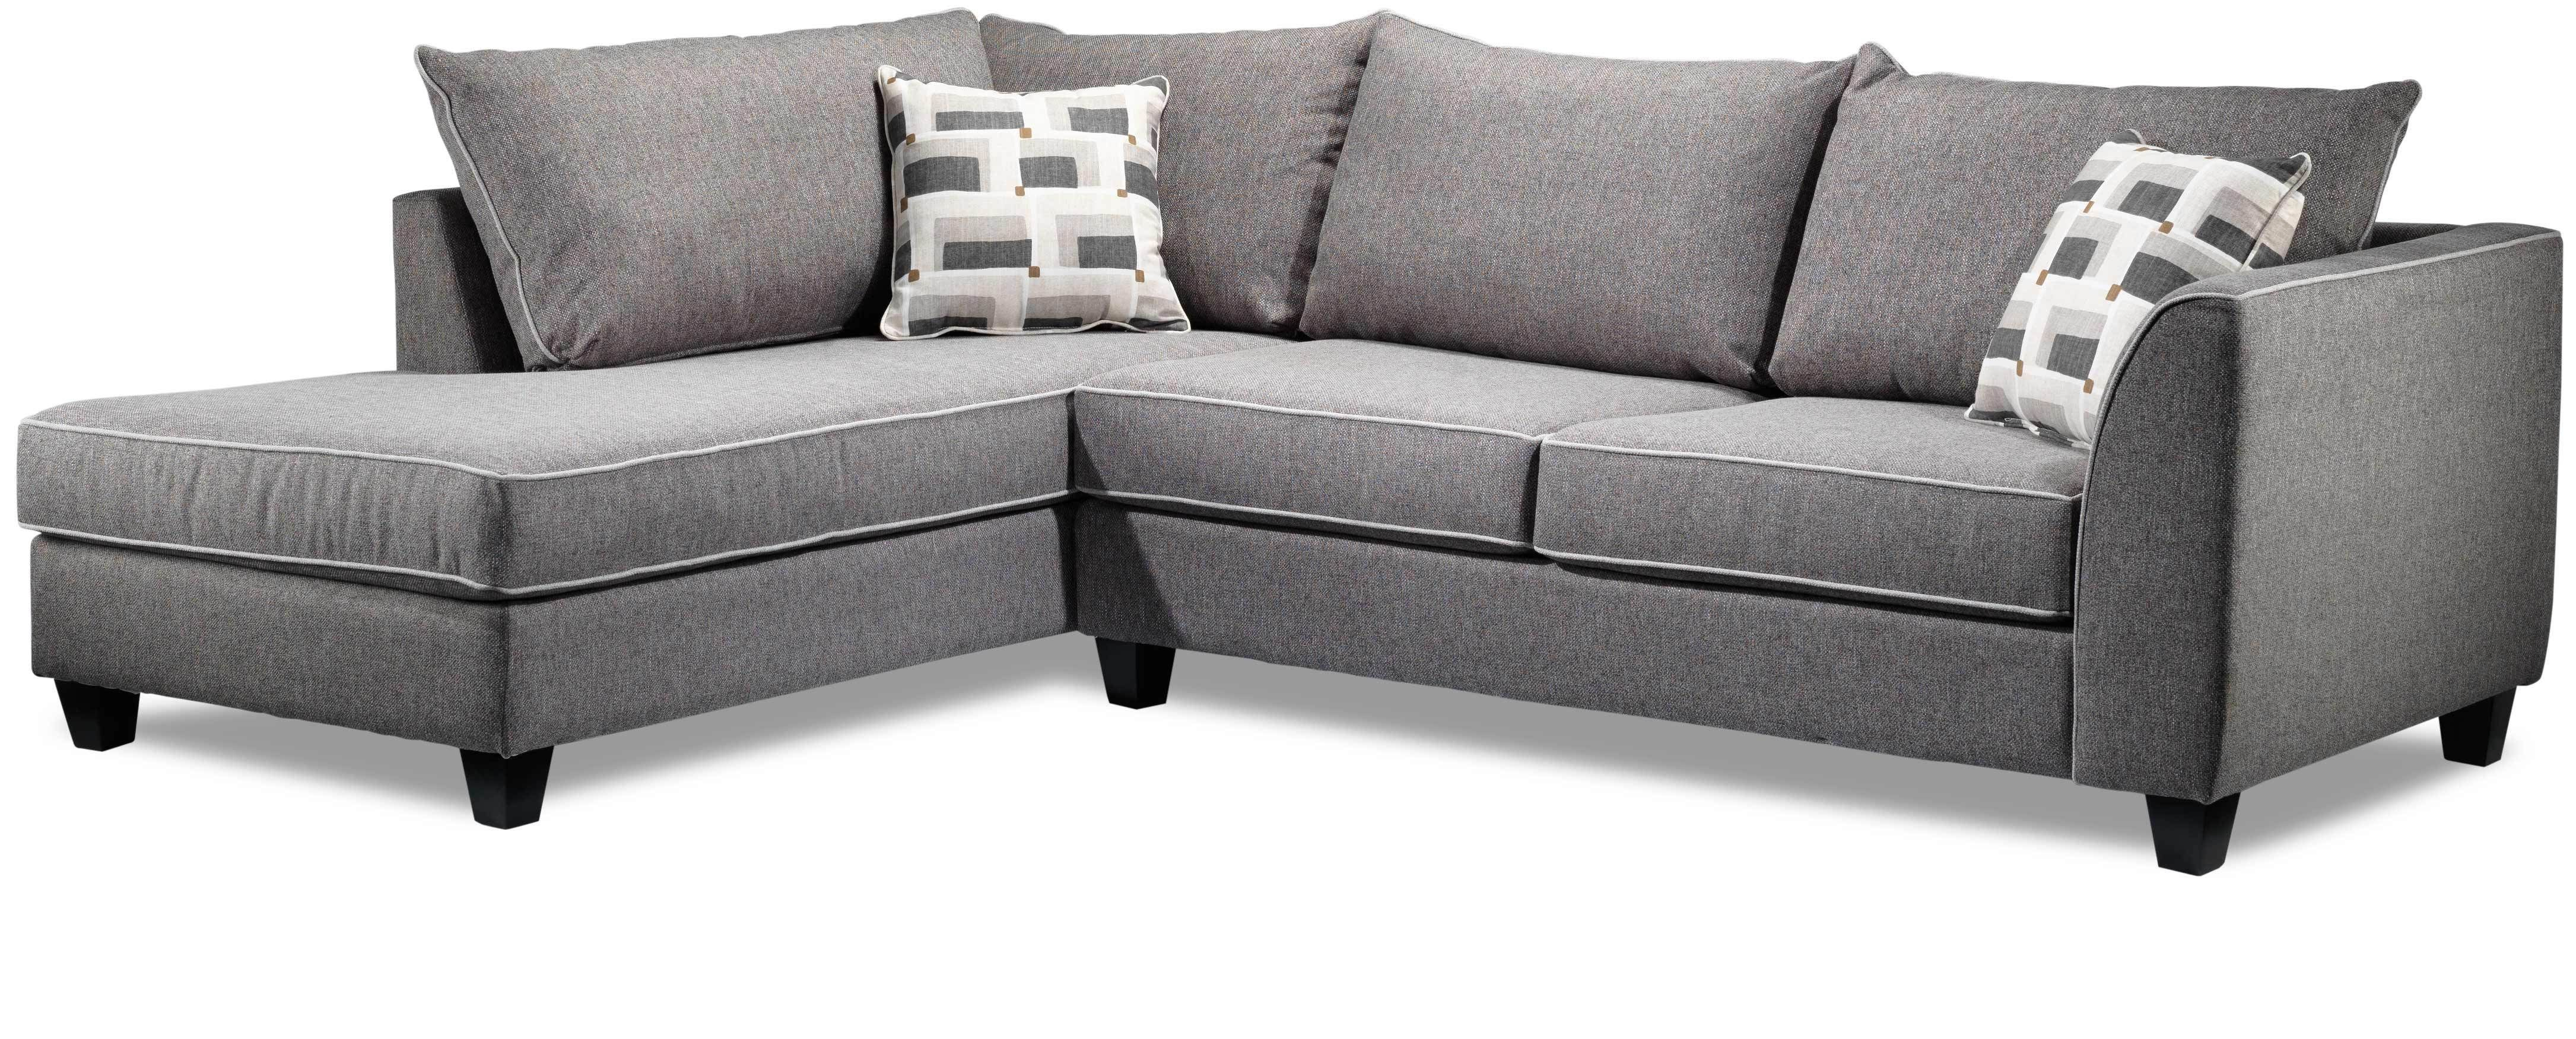 Trinity 2 Piece Sectional With Modular Chaise Graphite Sectional Sofa With Chaise Sofa Frame Left Facing Chaise